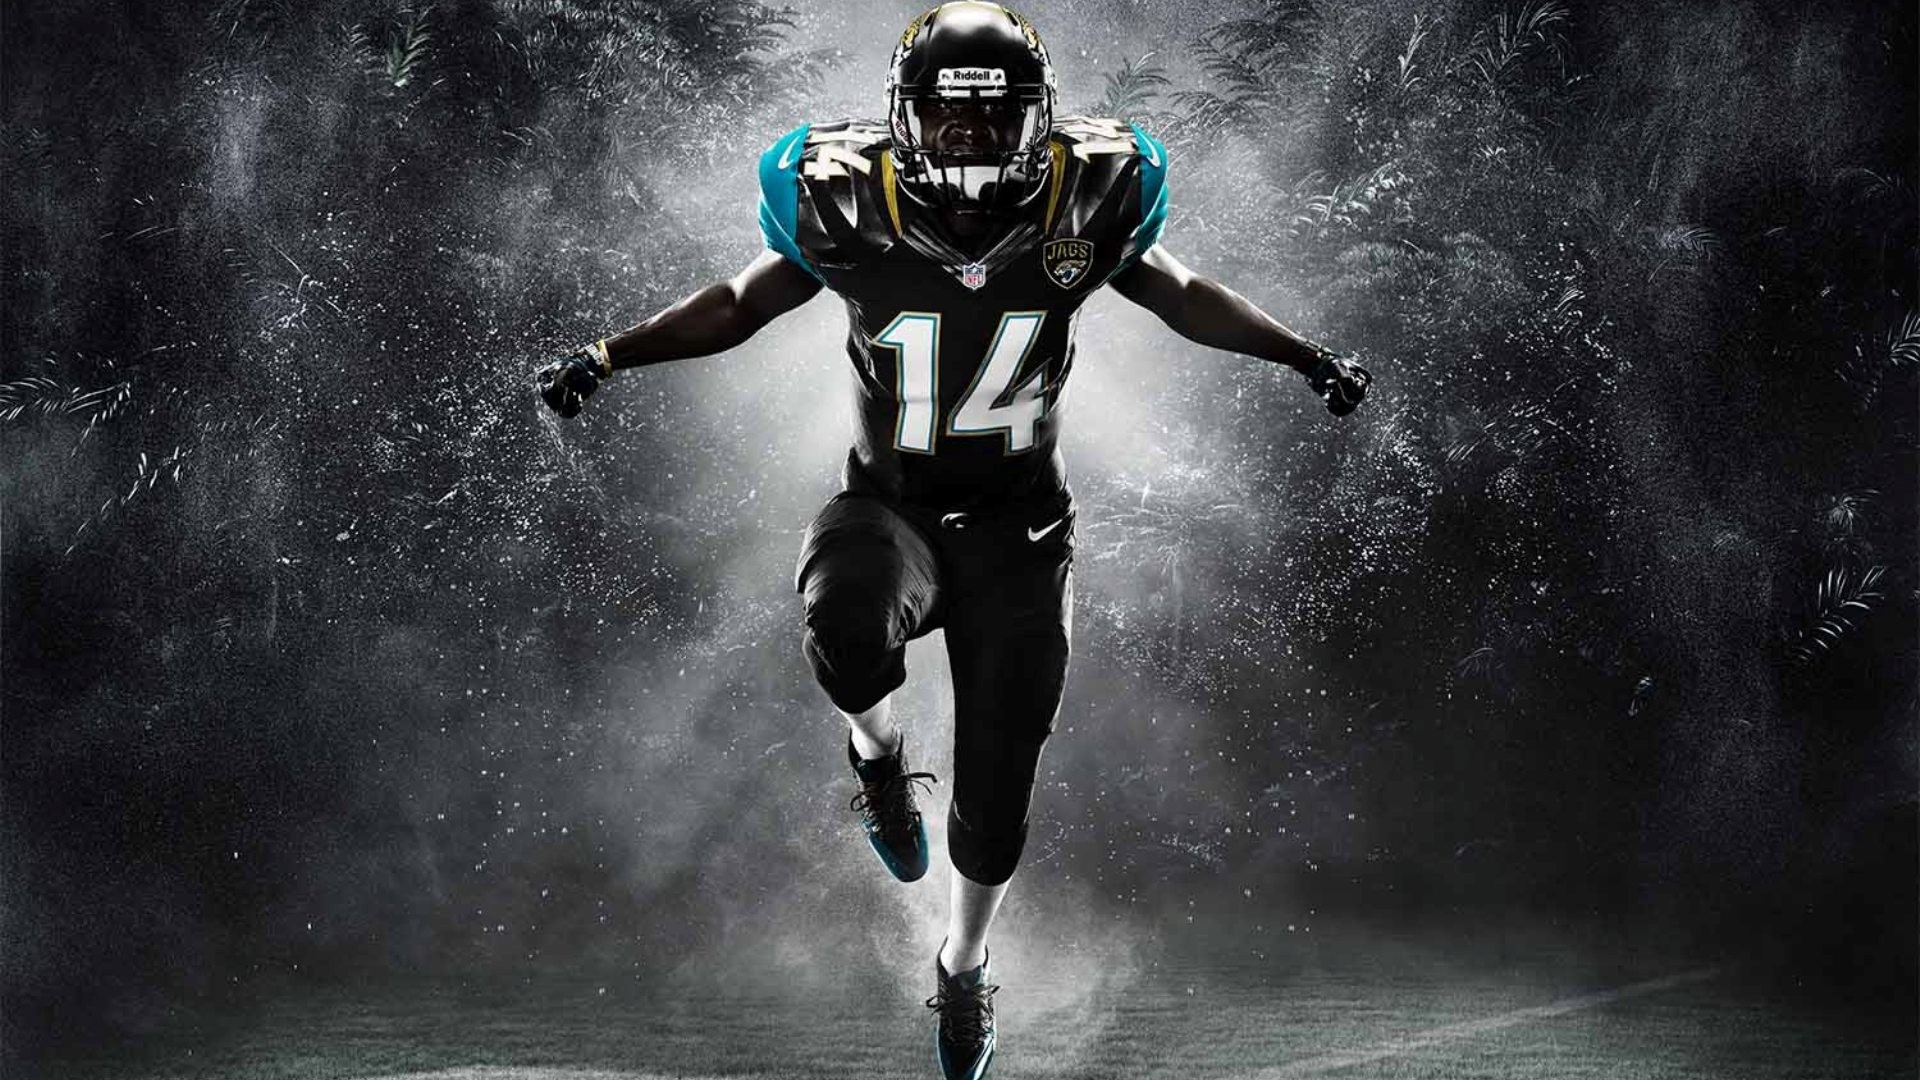 1920x1080 JACKSONVILLE JAGUARS nfl football ej wallpaper background